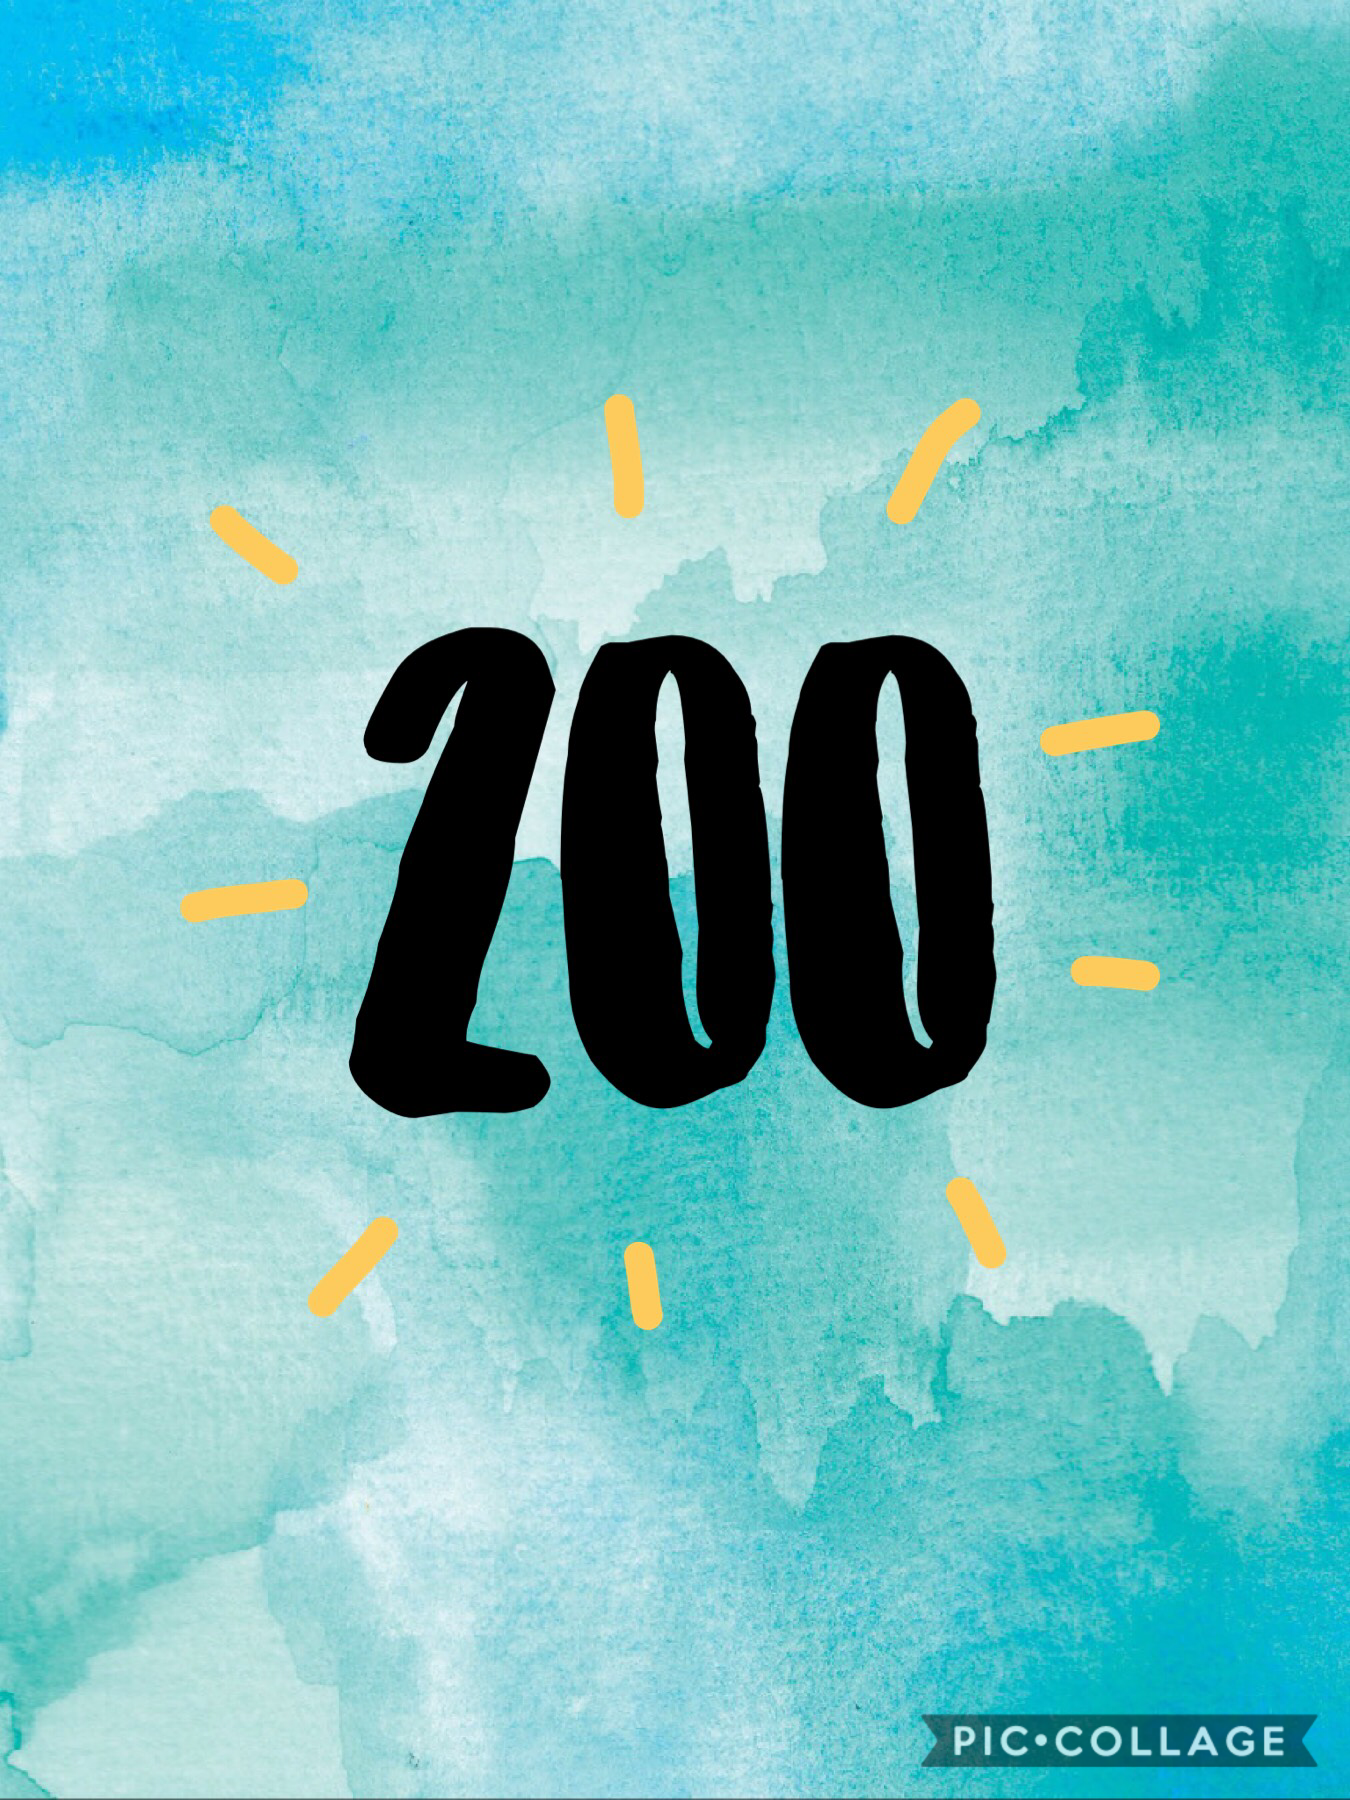 🥳🥳tappppy🥳🥳 I'm literally in math class...i leave tomorrow for a basketball trip but OMGGGG 200?!?!!?!?!?!?!? I cannot  CANNOT  Thank you guys enough.  I luv you allllll! 💞💞💞🤪🤪🦖🦖